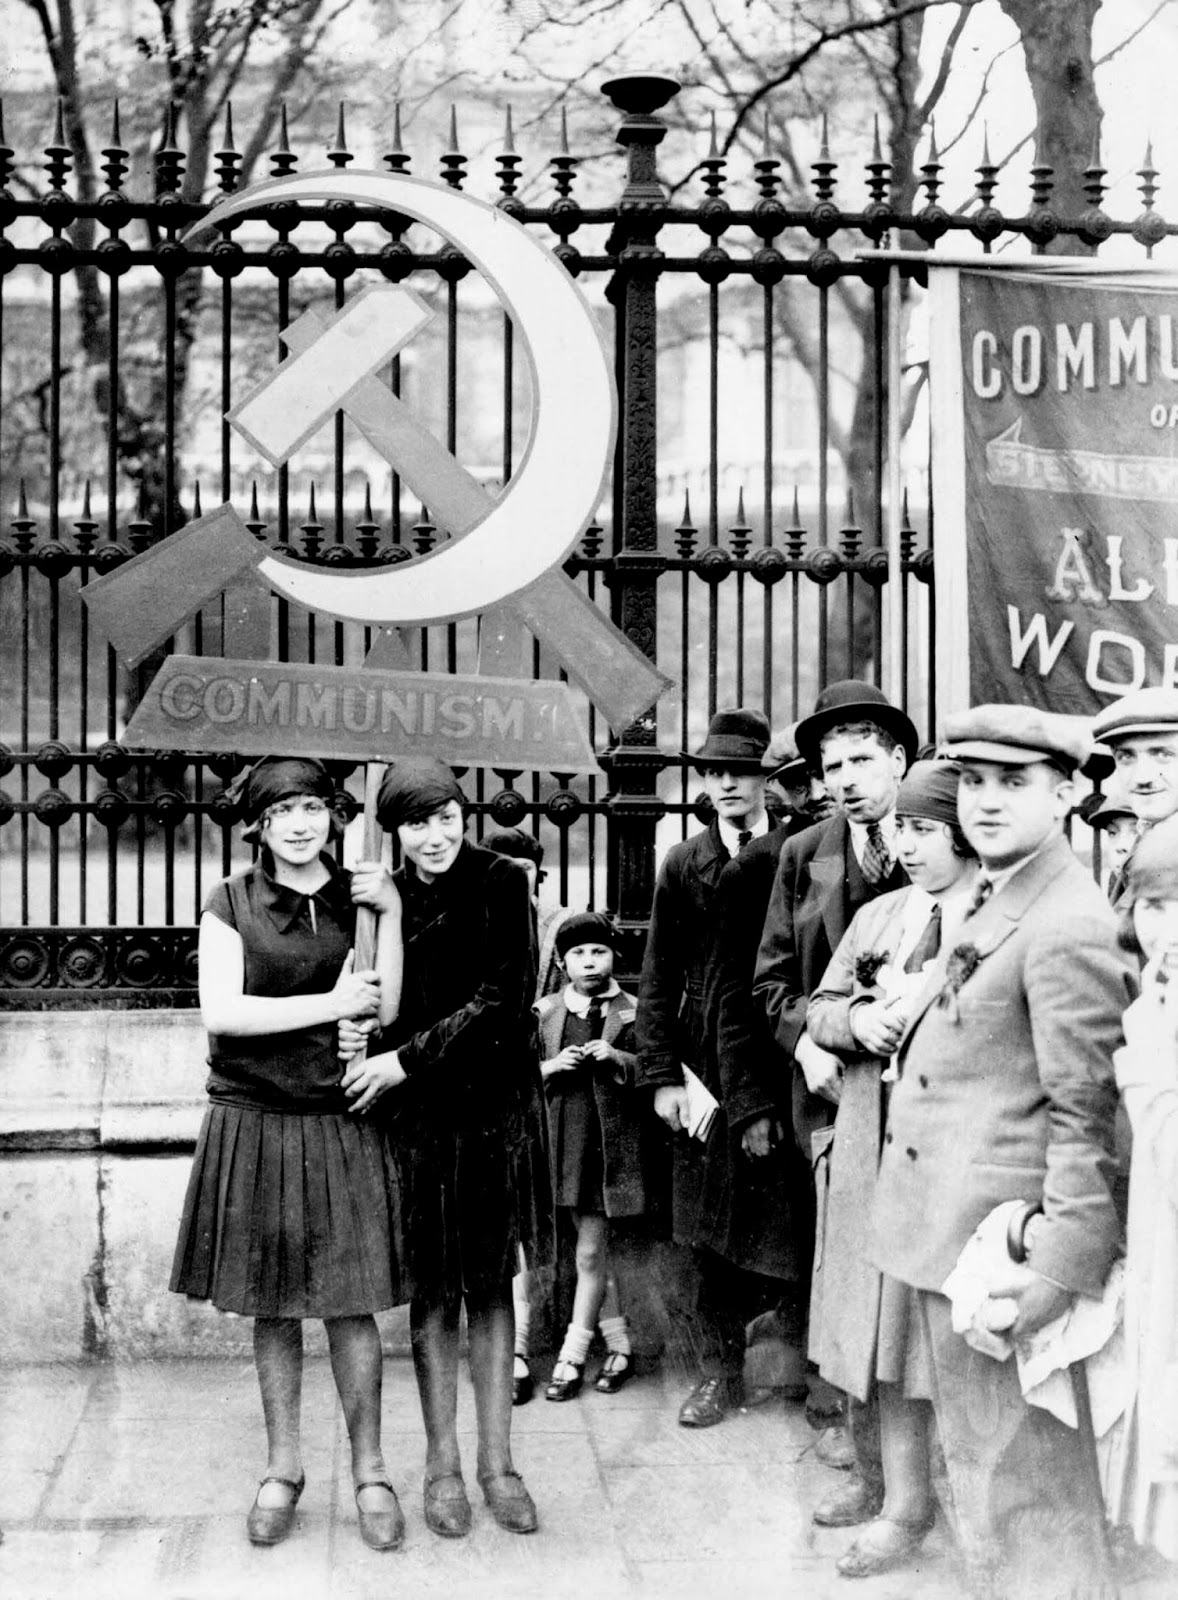 Communists in London celebrating May Day. 1928.